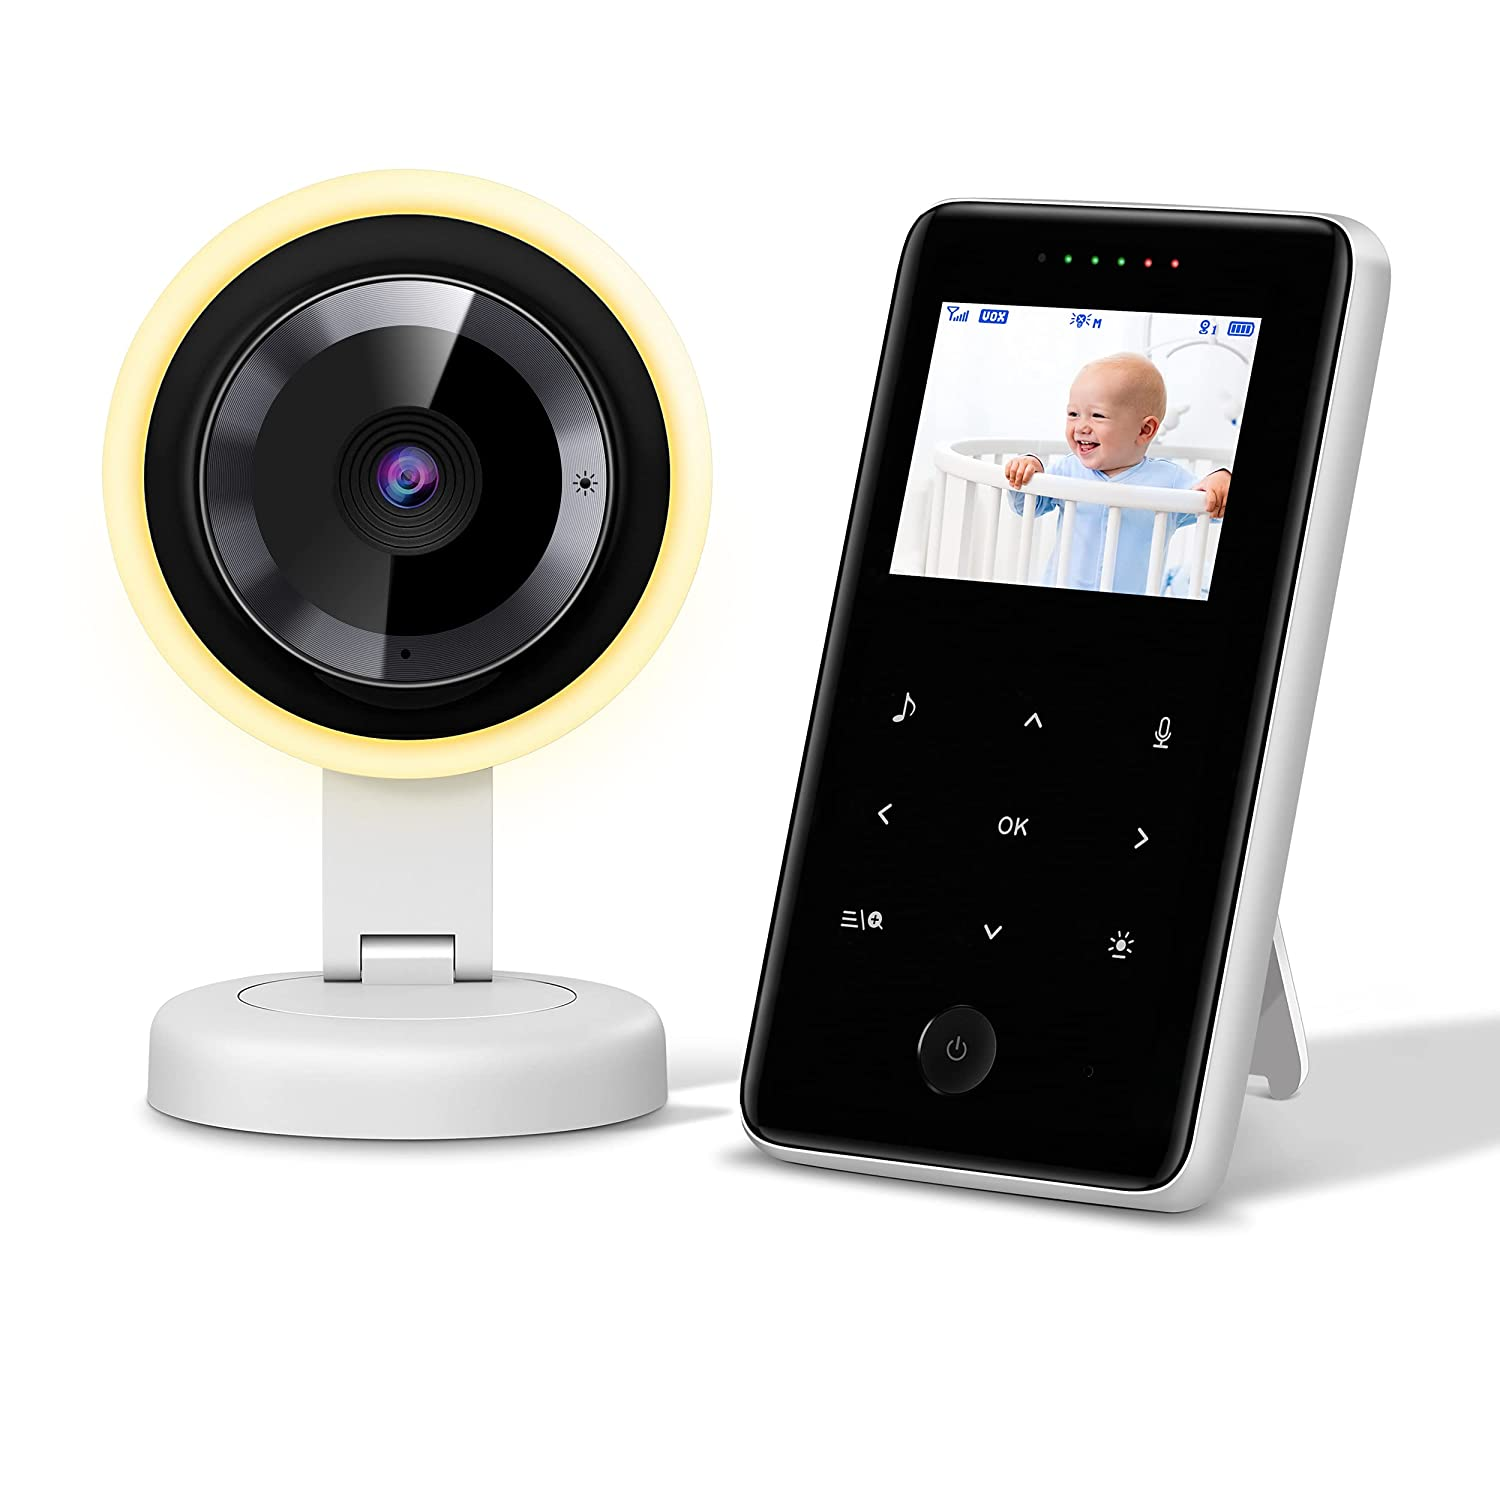 【2021 Newest】Video Baby Monitor with Camera, Audio and Night Light, Digital 2.4Ghz Wireless Baby Monitor, Auto Night Vision, Touch Control, Two-Way Talk, 960ft Range, VOX Mode, 2.4 Inch Display